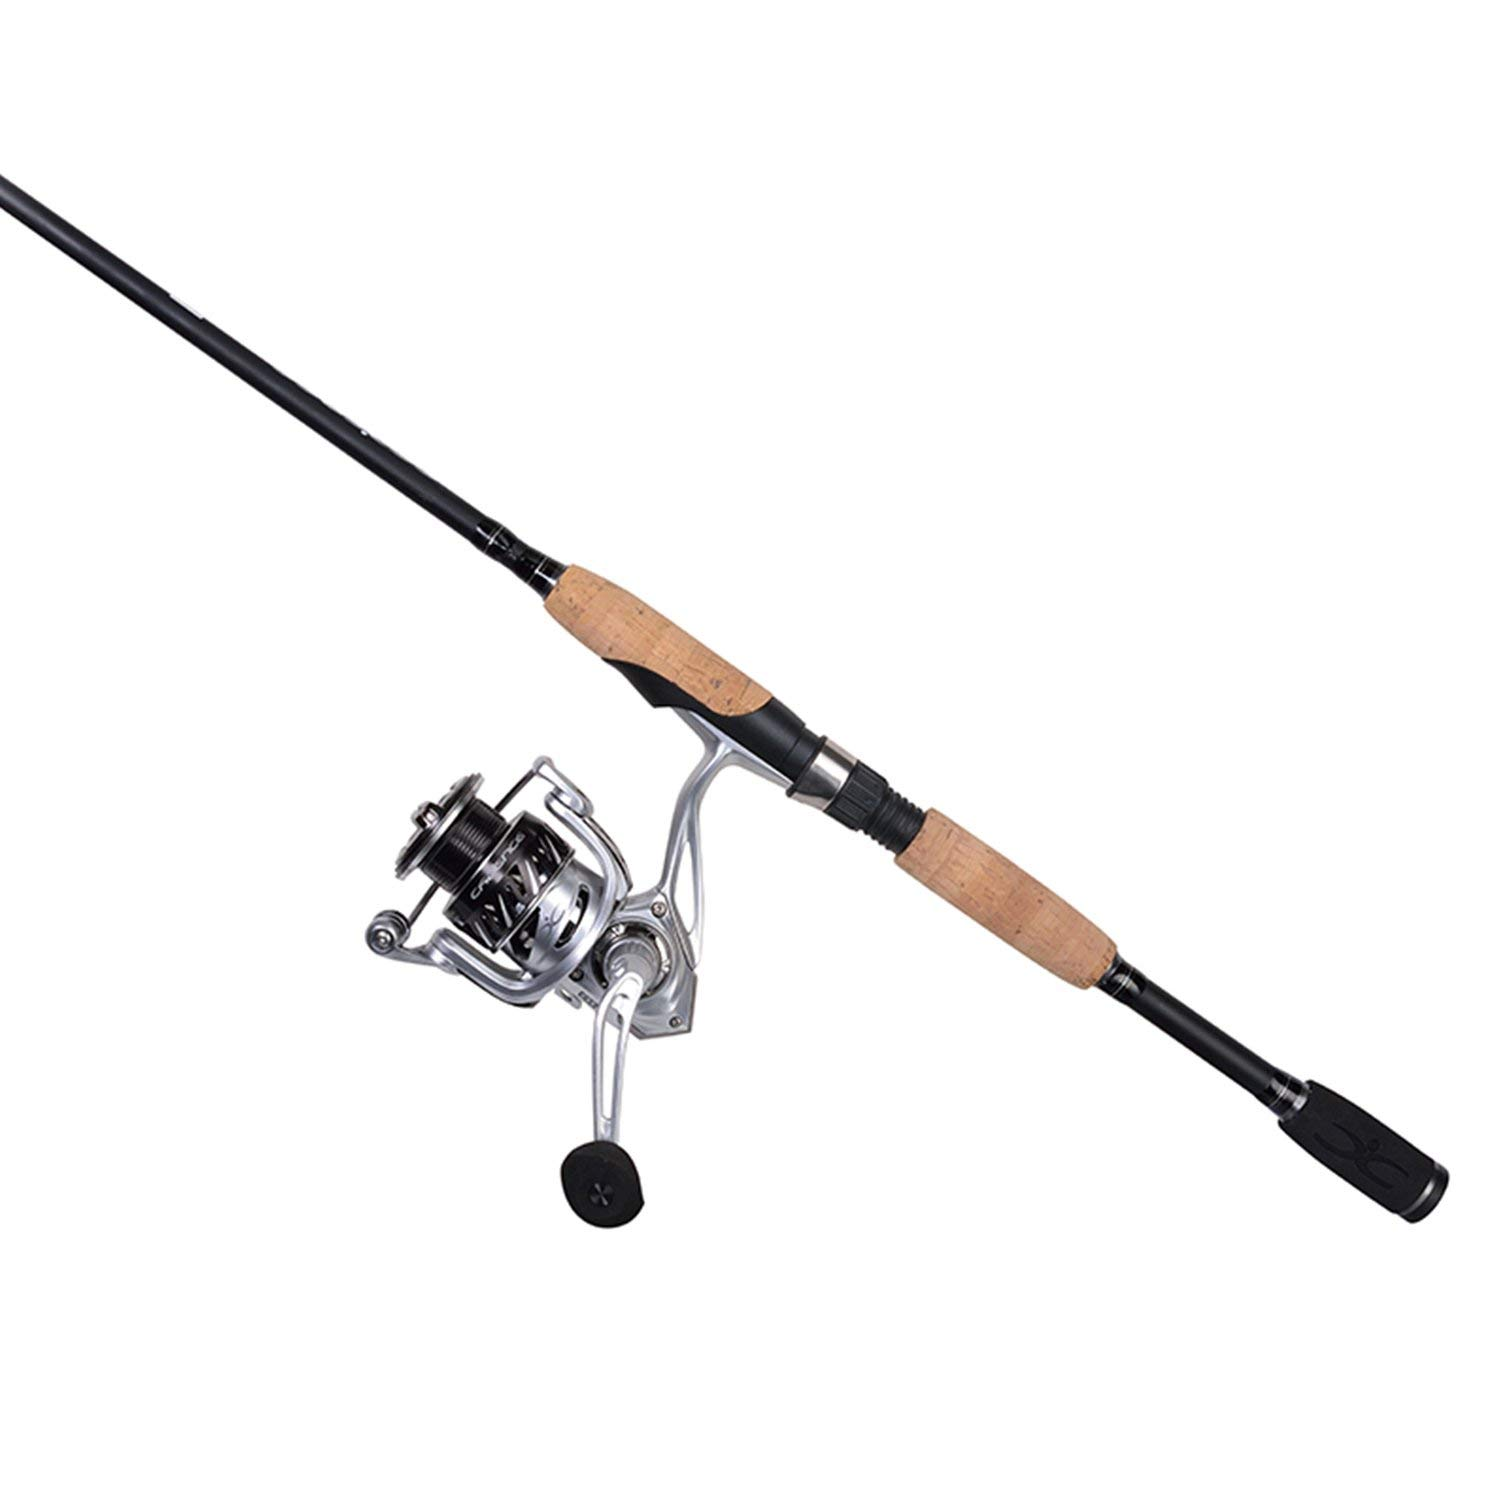 Cadence CC6 Spinning Combo Lightweight with 24-Ton Graphite Rod Aluminum Frame 7 1 Corrosion Resistant Bearings Carbon Rotor Side Plate Spinning Reel Rod Combo